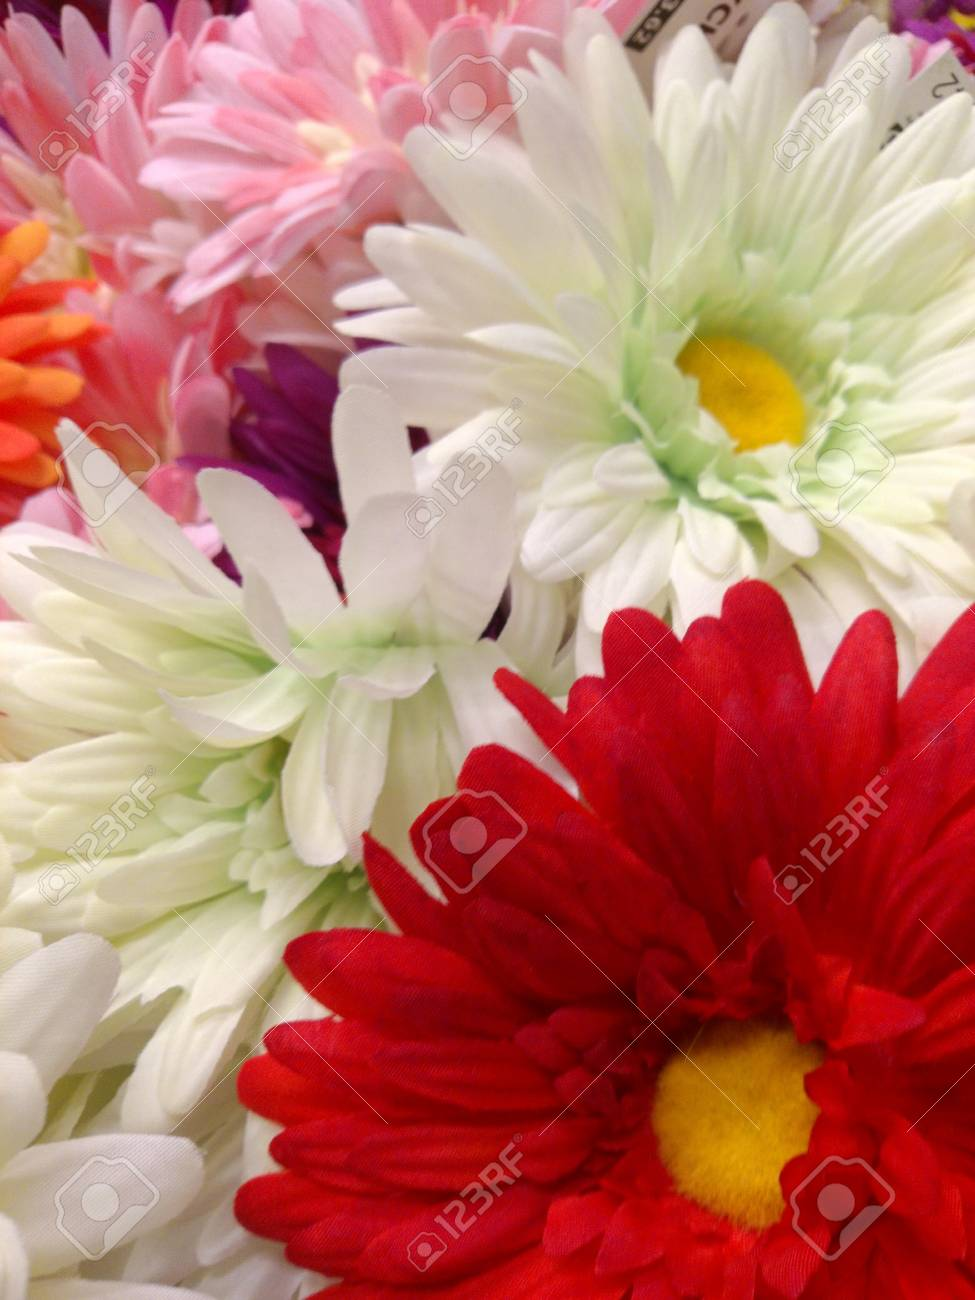 Beautiful fake flowers stock photo picture and royalty free image beautiful fake flowers stock photo 18822239 izmirmasajfo